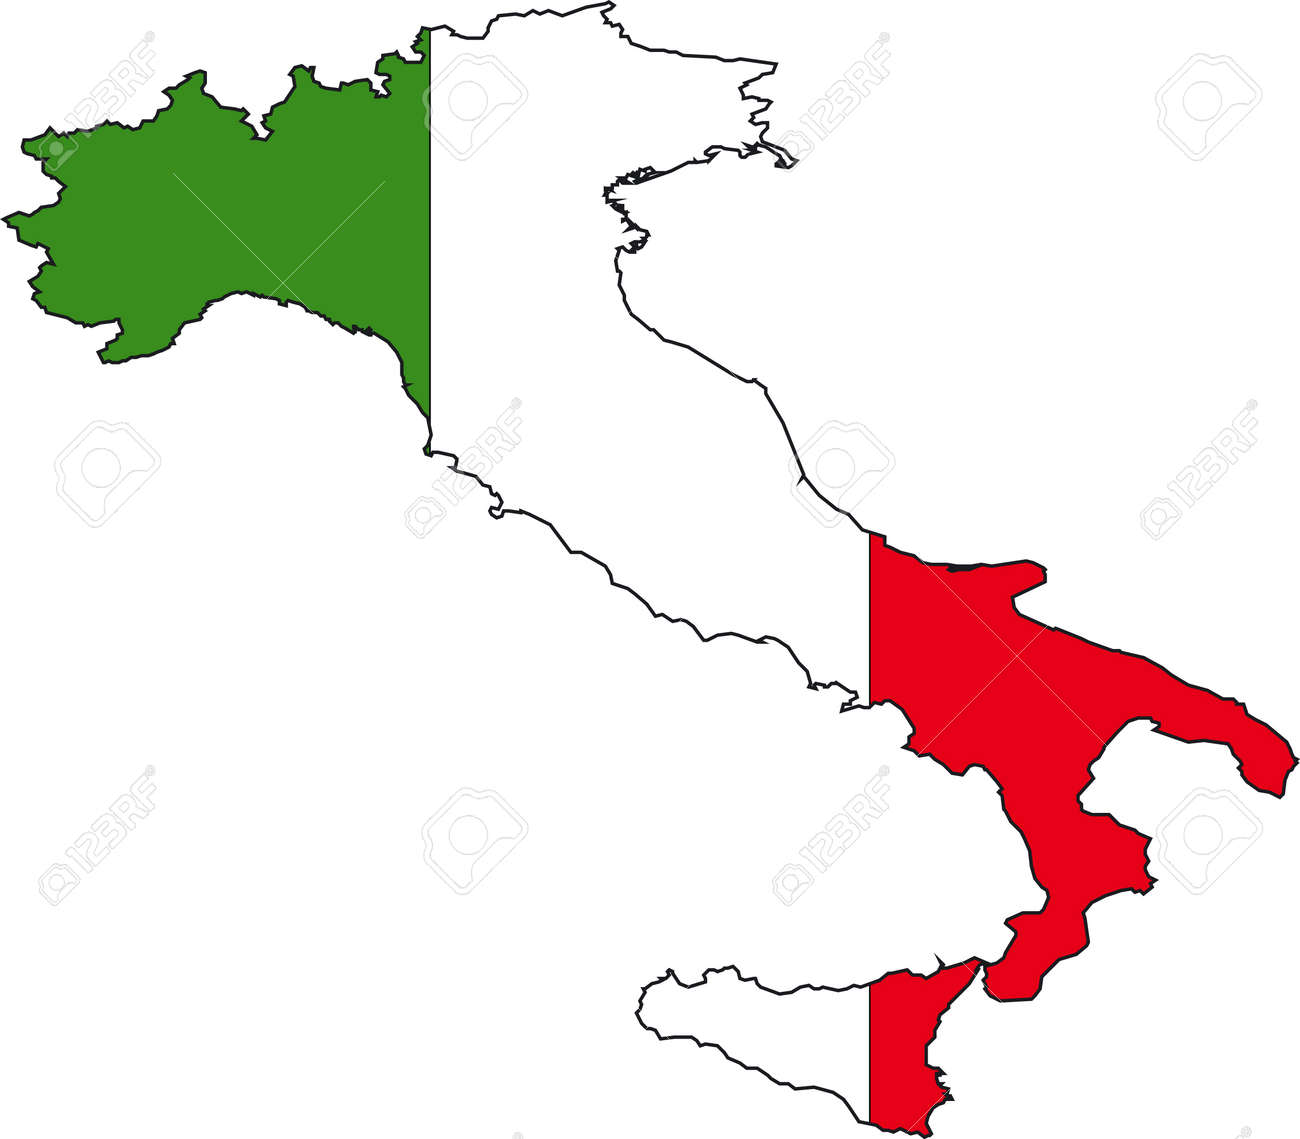 Map Of Italy Vector. Vector. Get Free Images About World Maps